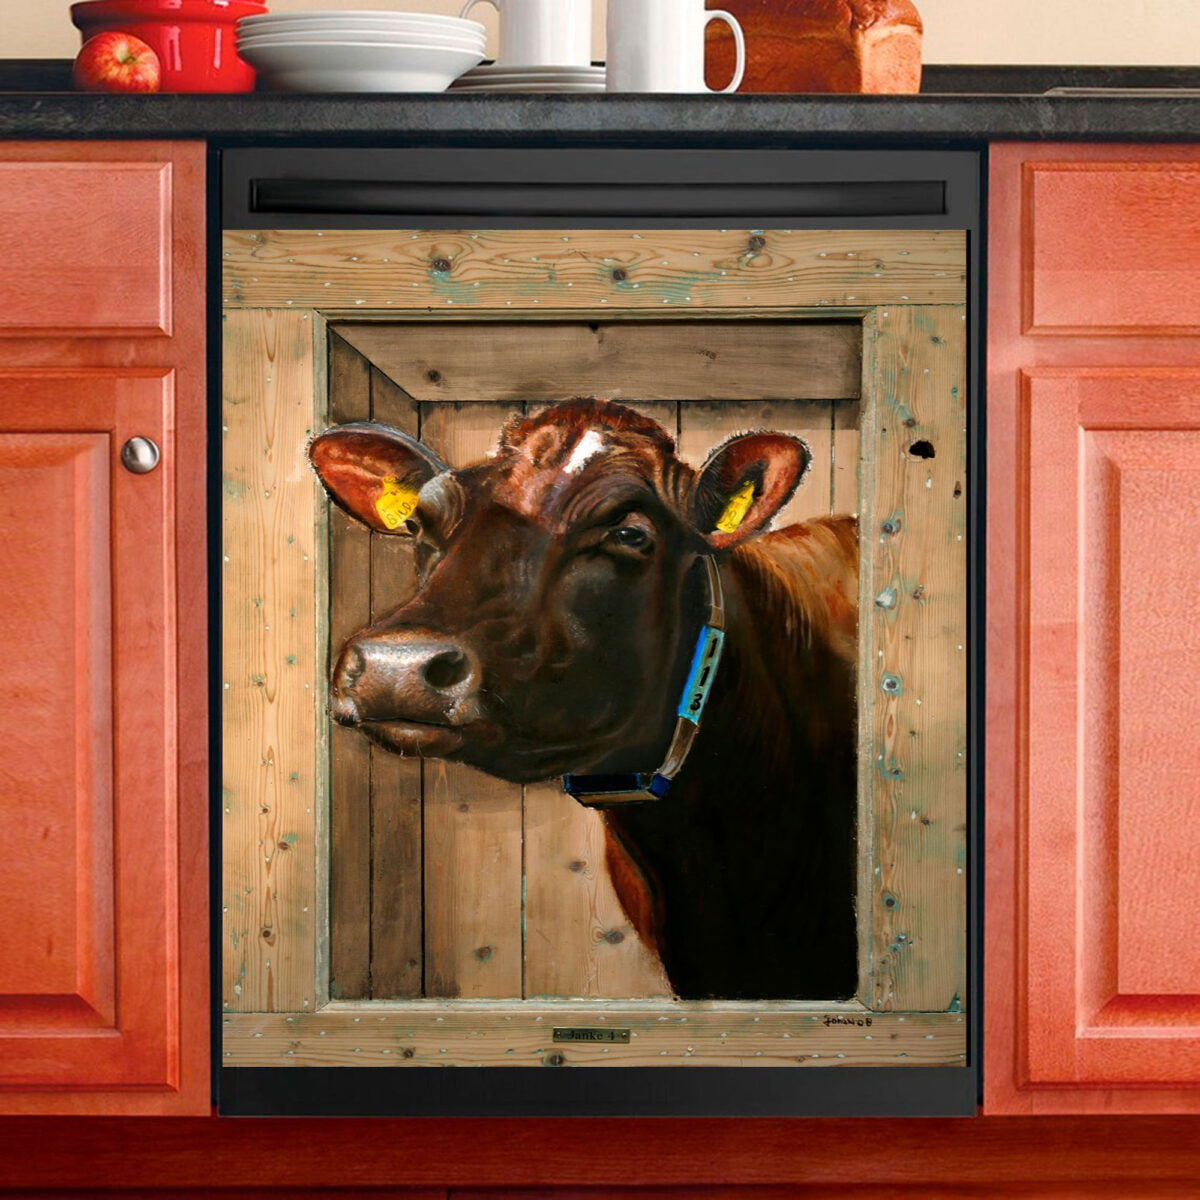 Love Cow Dishwasher Cover 7